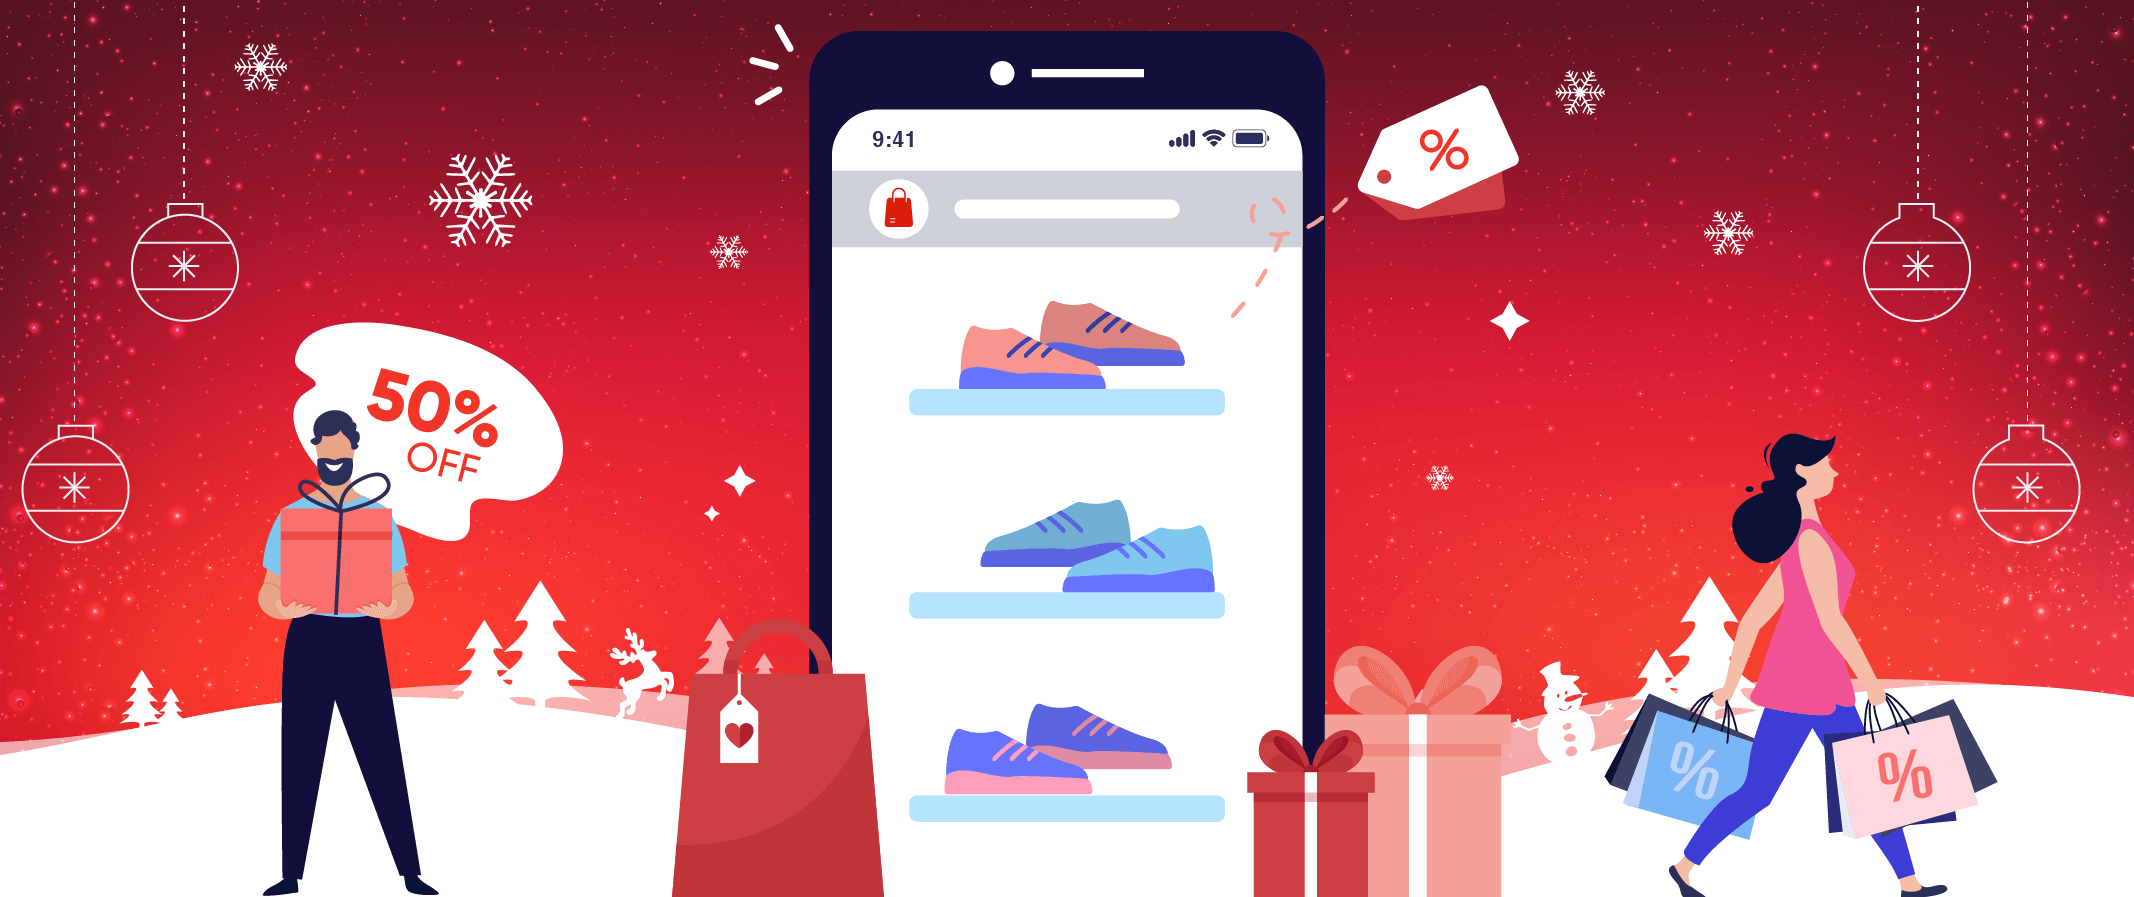 Holiday Marketing Ideas for 2020: Clever Campaigns to Help You Stand Out